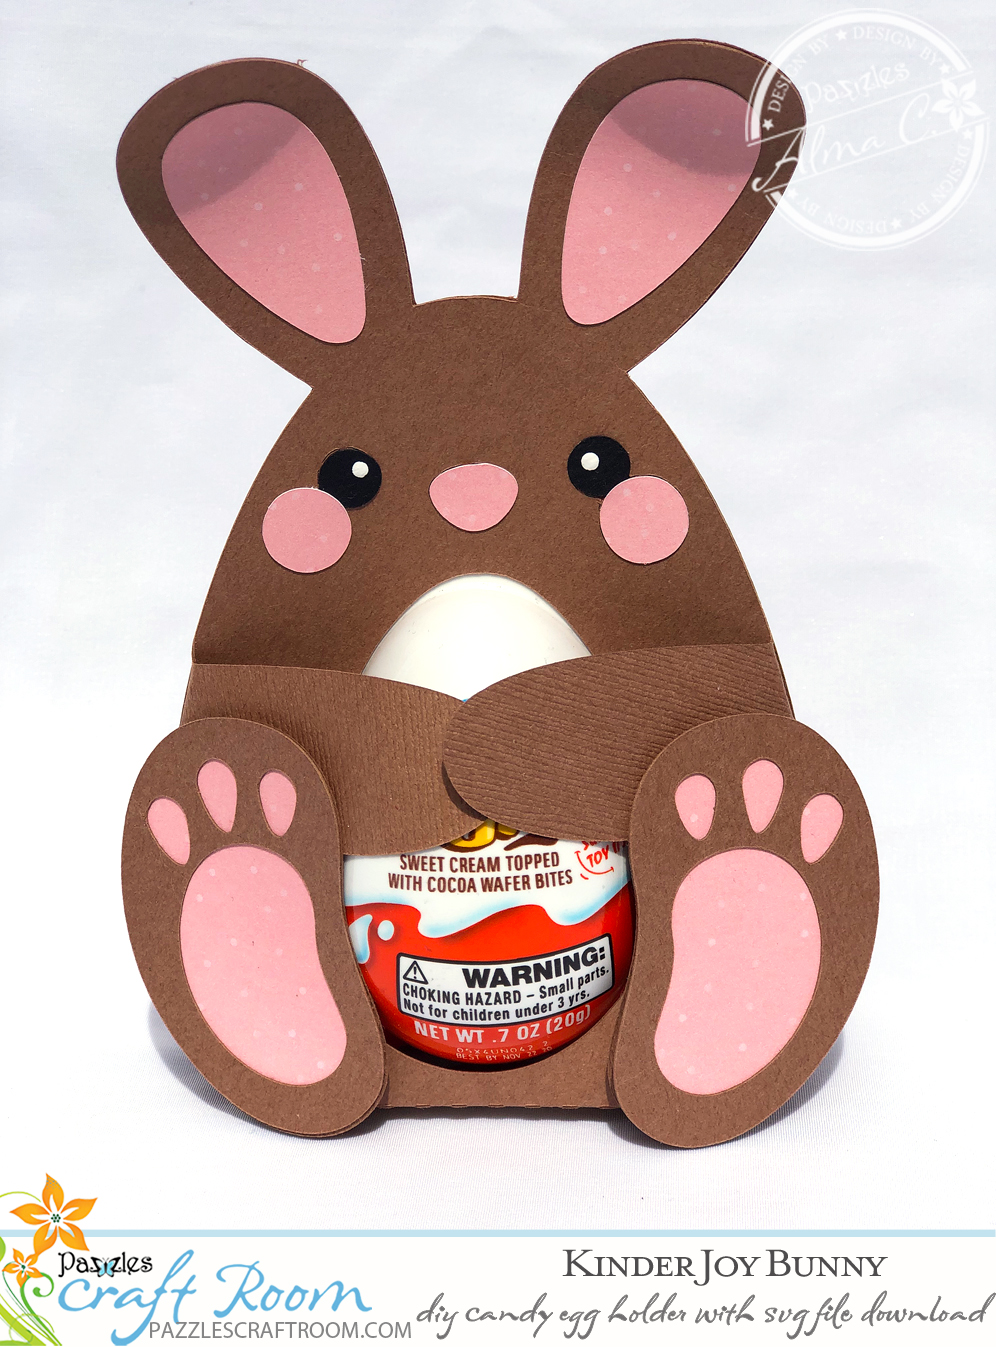 Pazzles DIY Bunny Candy Egg Holder for Kinder Joy with instant SVG download. Compatible with all major electronic cutters including Pazzles Inspiration, Cricut, and Silhouette Cameo. Design by Alma Cervantes.